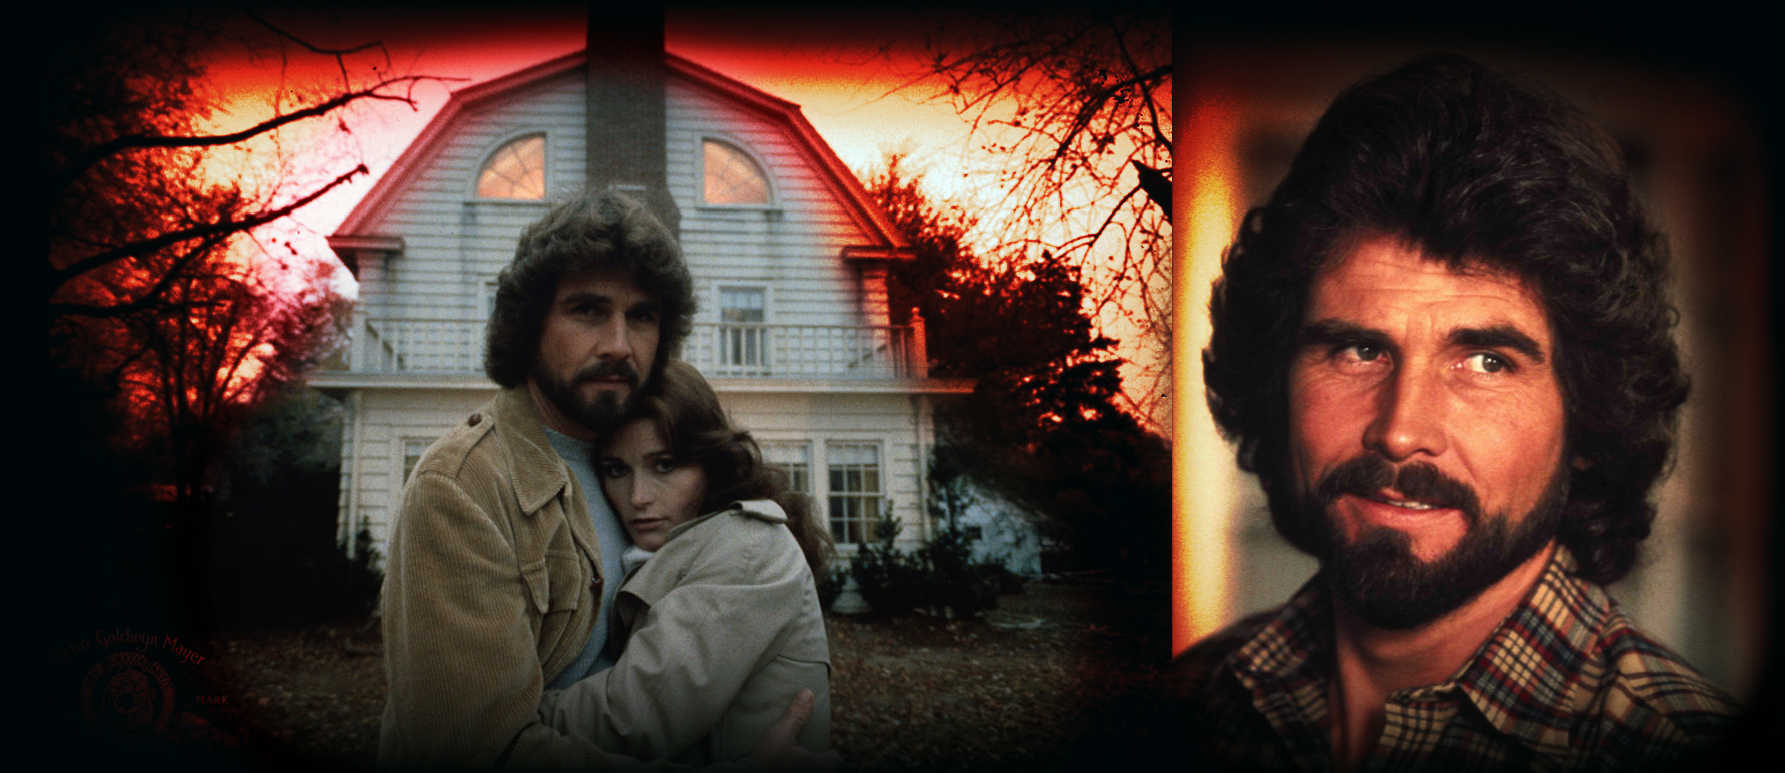 Robert Tharp Your Choice : The Amityville Horror